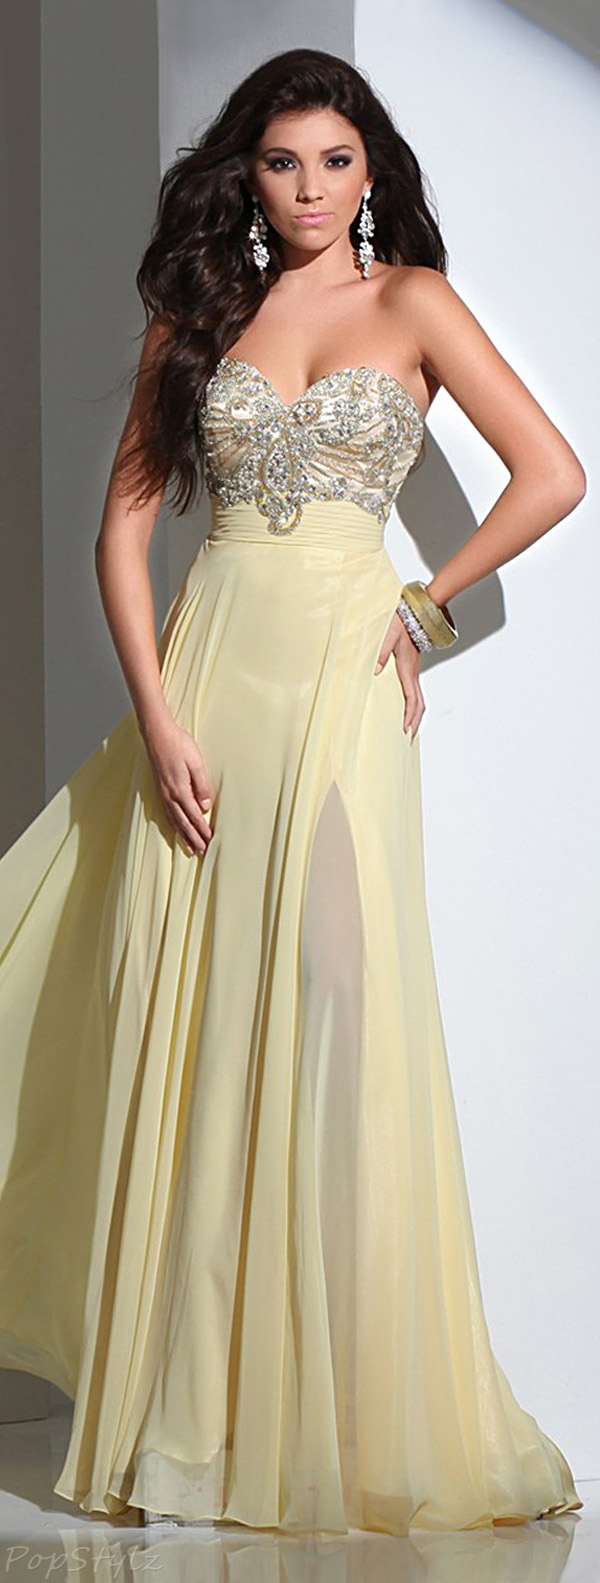 Tony Bowls 115714 Strapless Long Flowing Gown